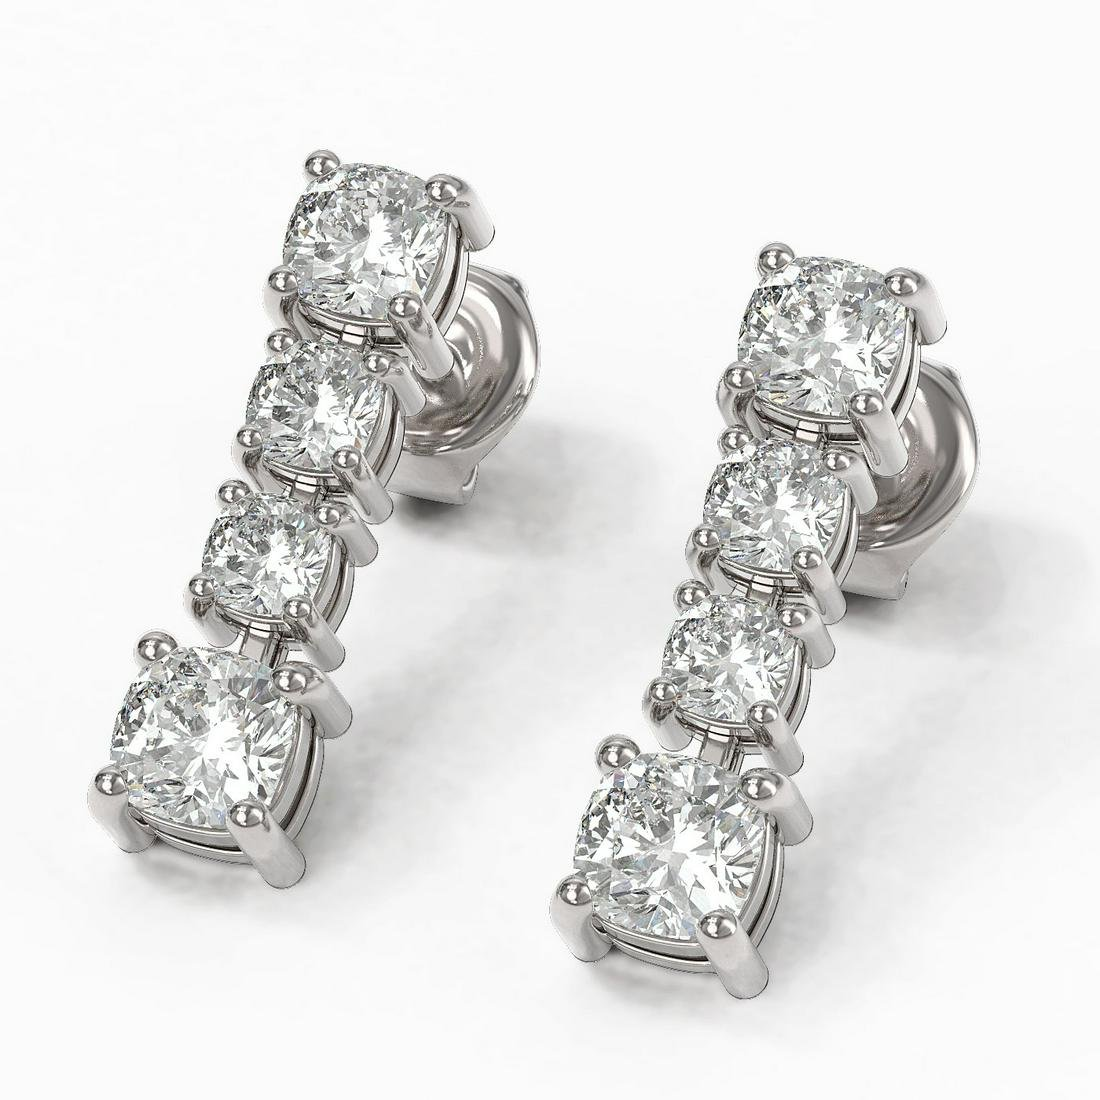 3.78 ctw Cushion Diamond Earrings 18K White Gold